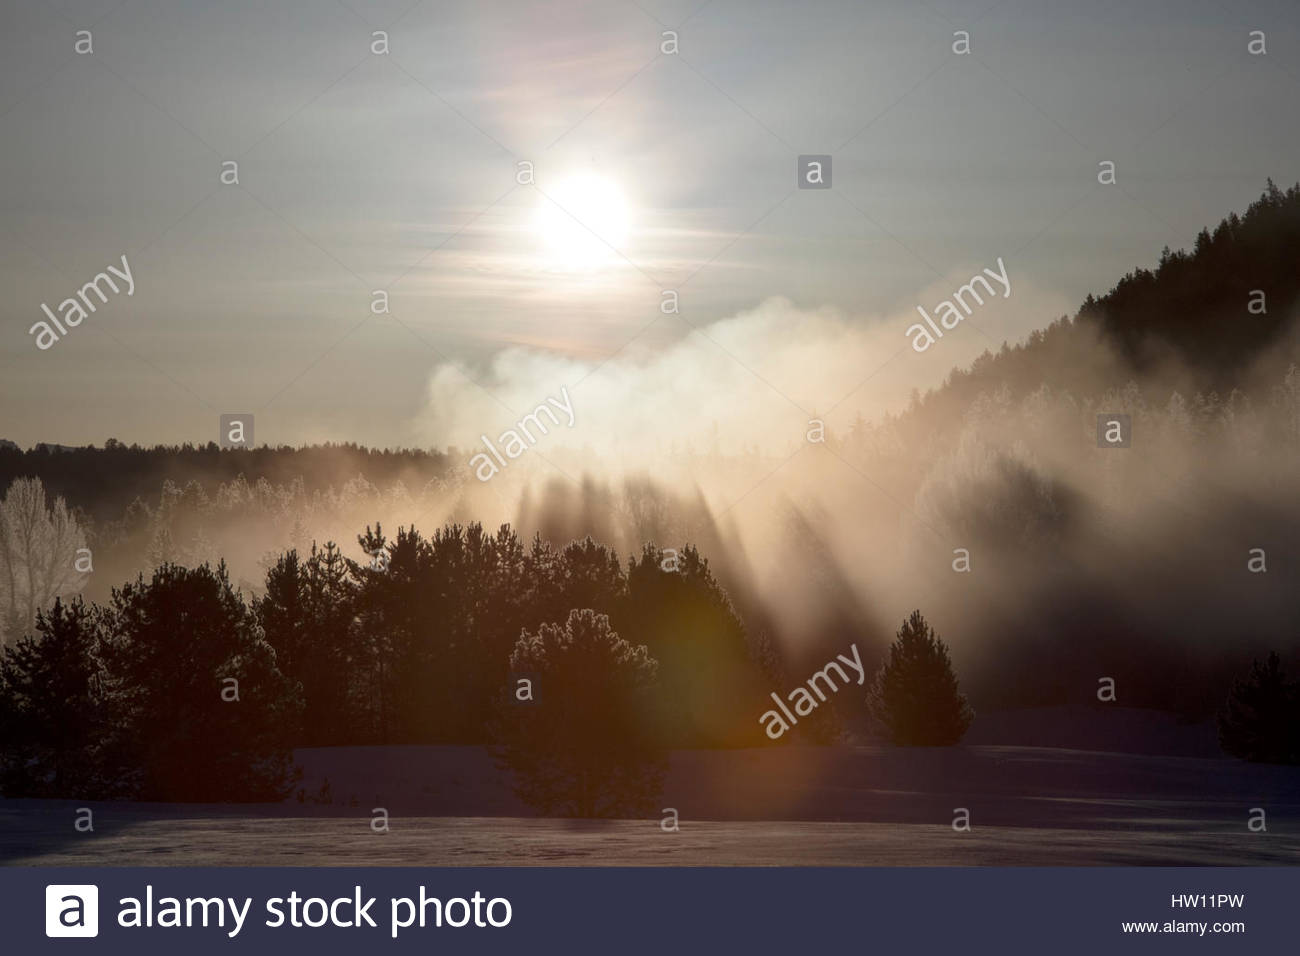 The sun shines through the frozen mist that blankets a forest stand. - Stock Image